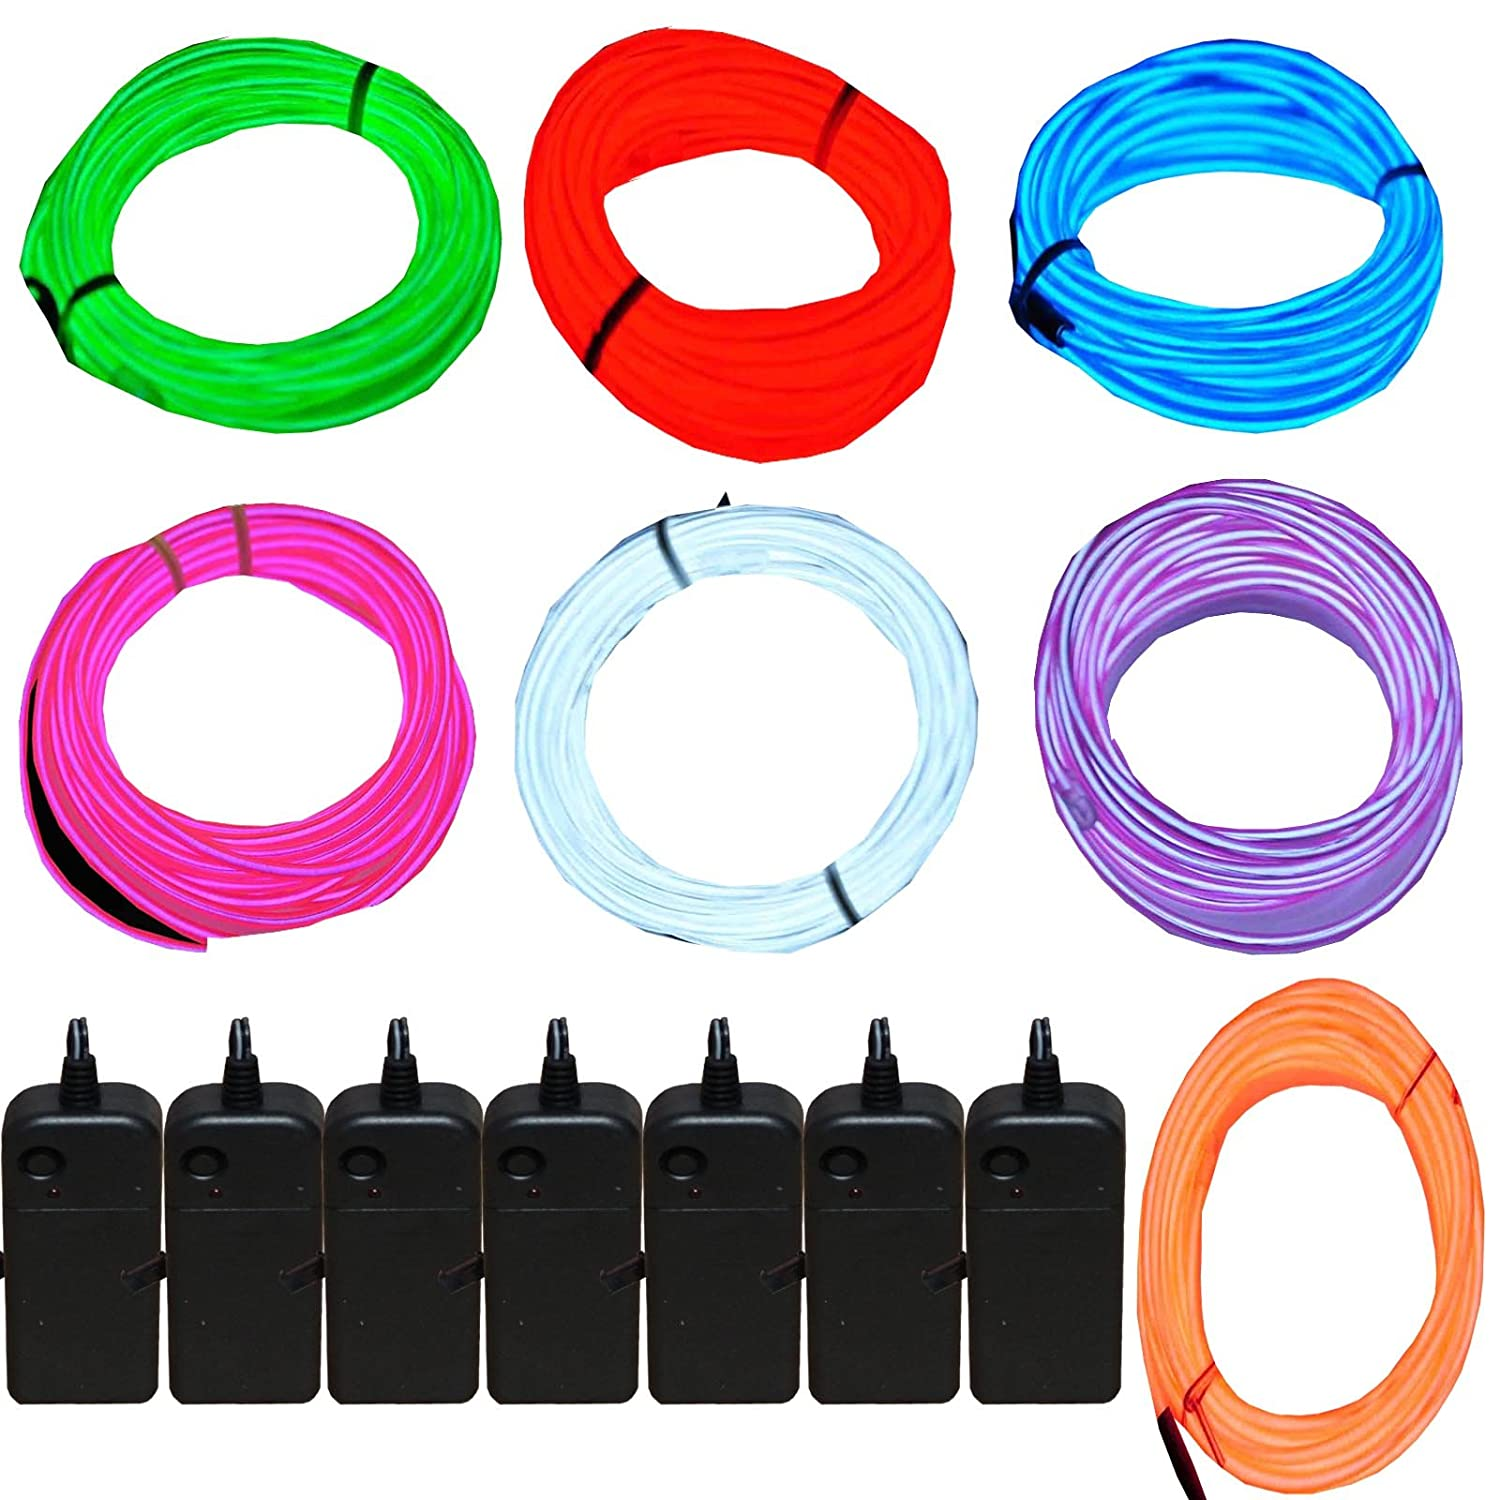 7 Pack - Jytrend 9ft Neon Light El Wire w/Battery Pack (Green, Blue, Red, Orange, Purple, White, Pink)